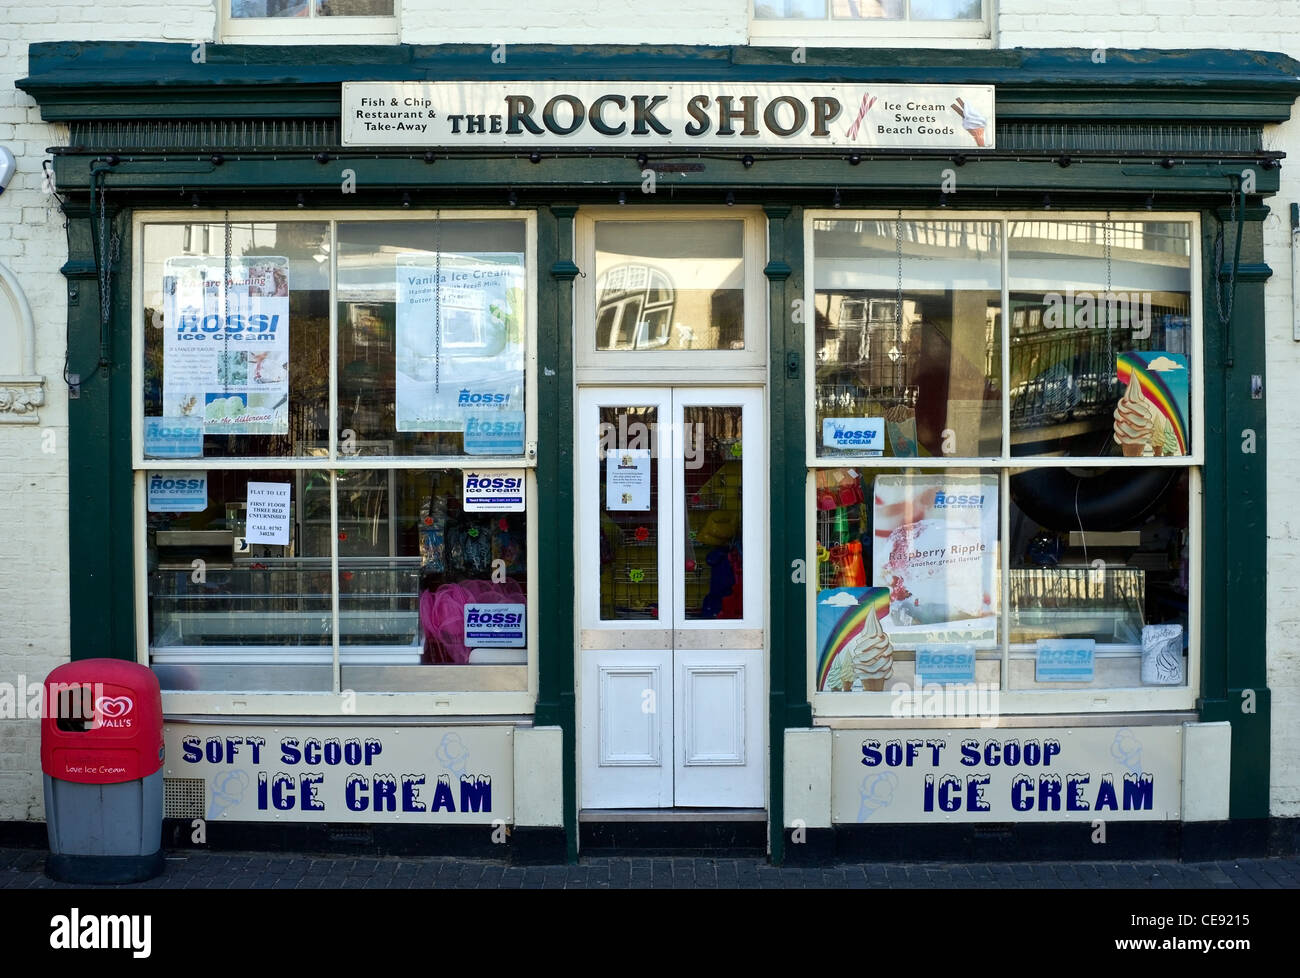 The facade of the Rock Shop in Leigh on Sea in Essex - Stock Image